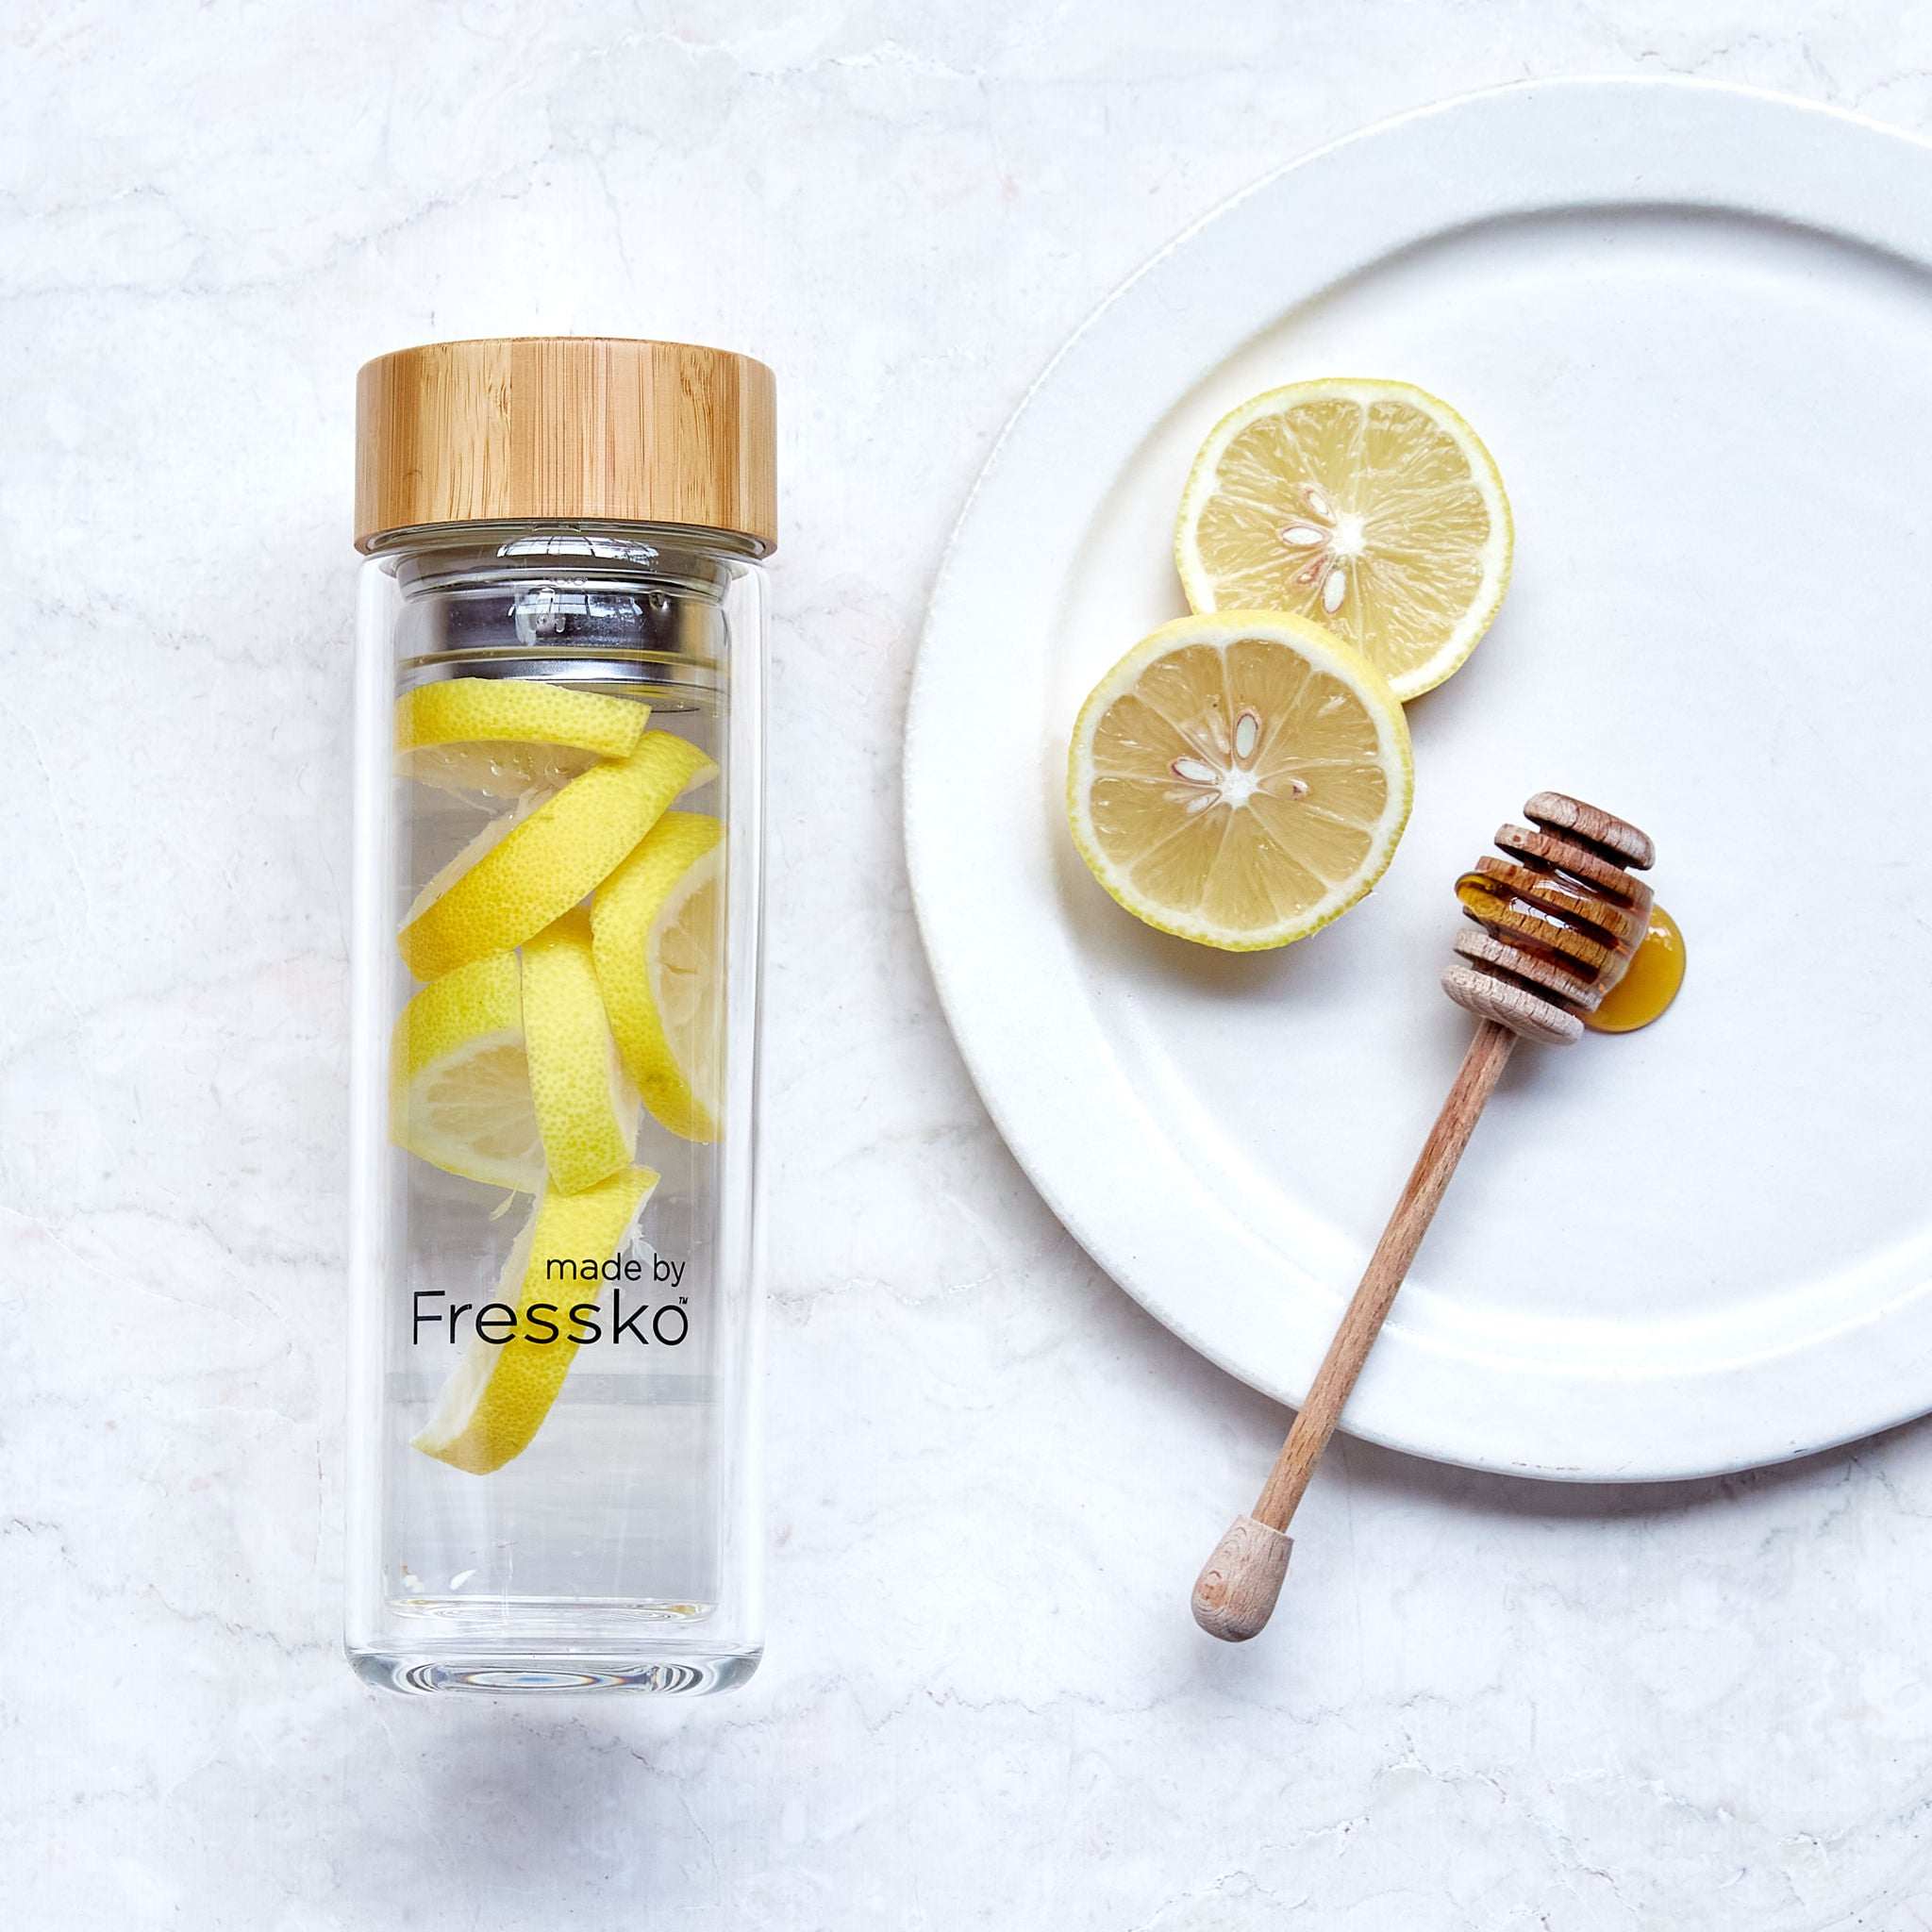 Lemon and honey water in glass fressko flask with plate with lemon and honey next to it